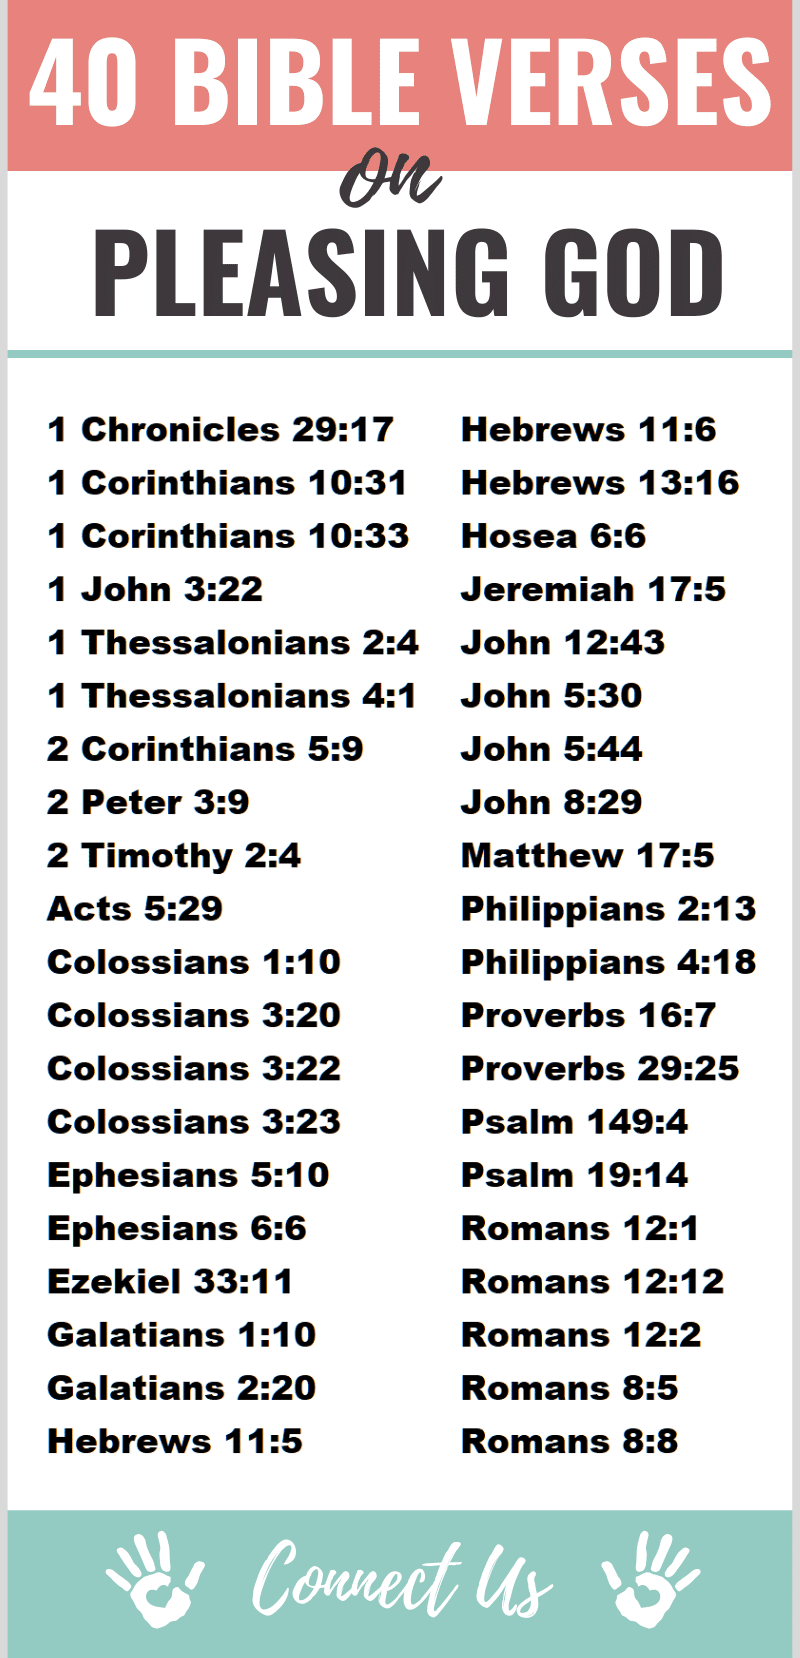 Bible Verses on Pleasing God